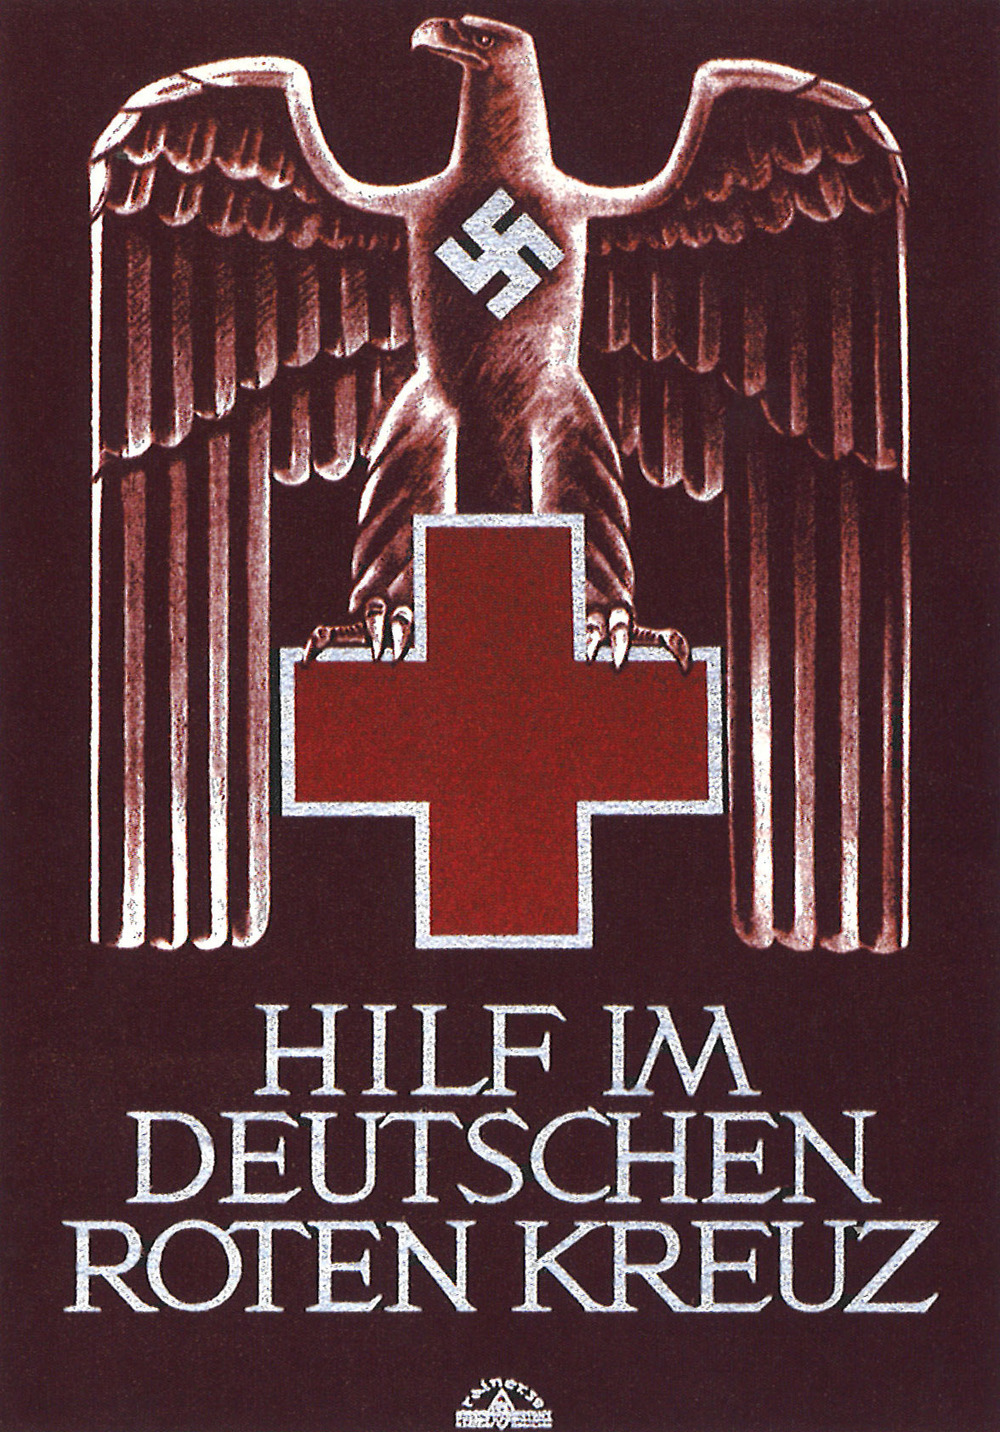 """Help the German Red Cross."" Germany 1941."